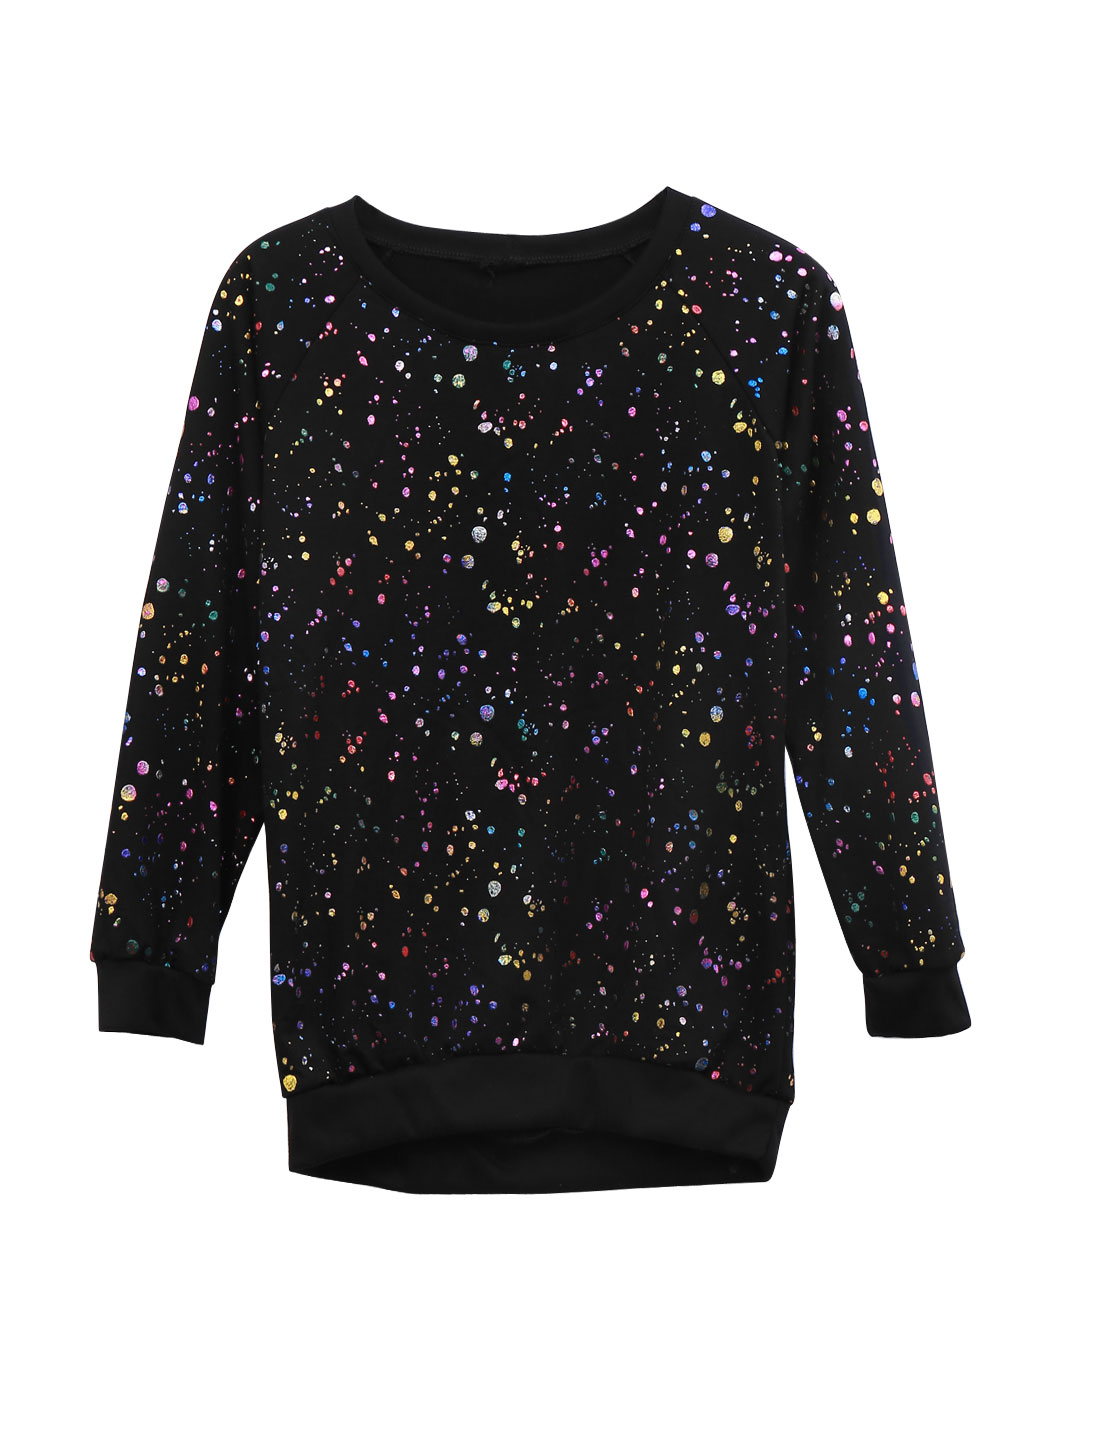 Women Dots Prints Raglan Sleeve Ribbed Hem Casual Sweatshirt Black XS